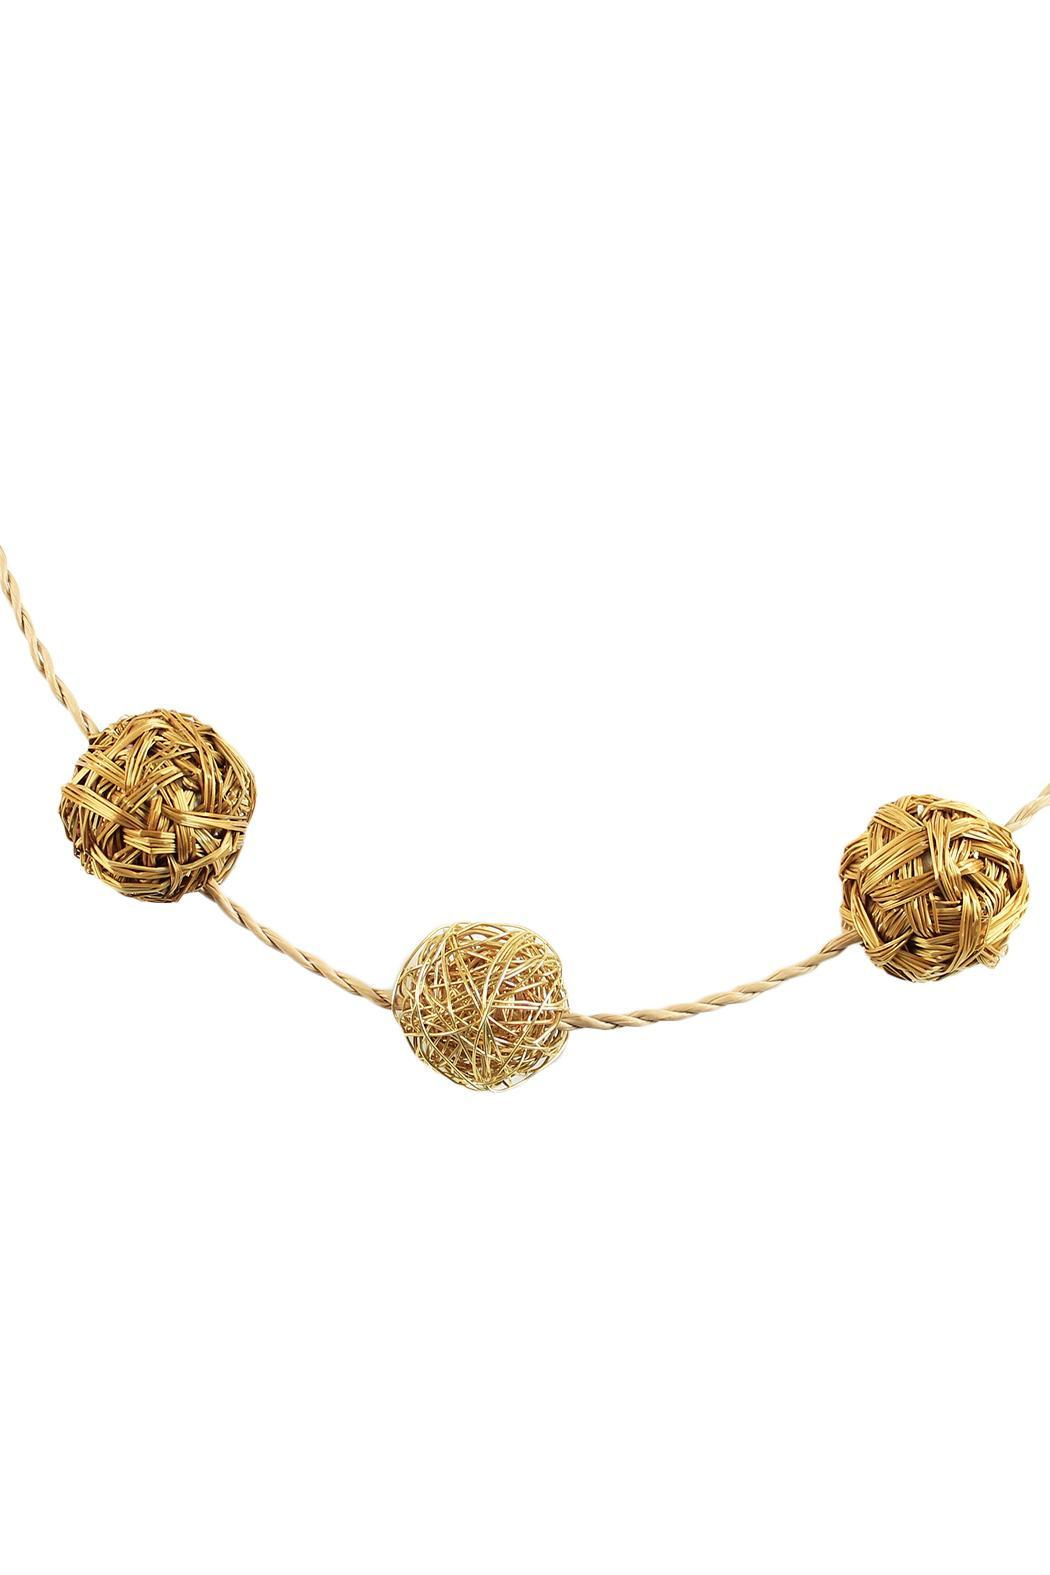 Linda de Taxco Vegetable Gold Necklace - Front Full Image